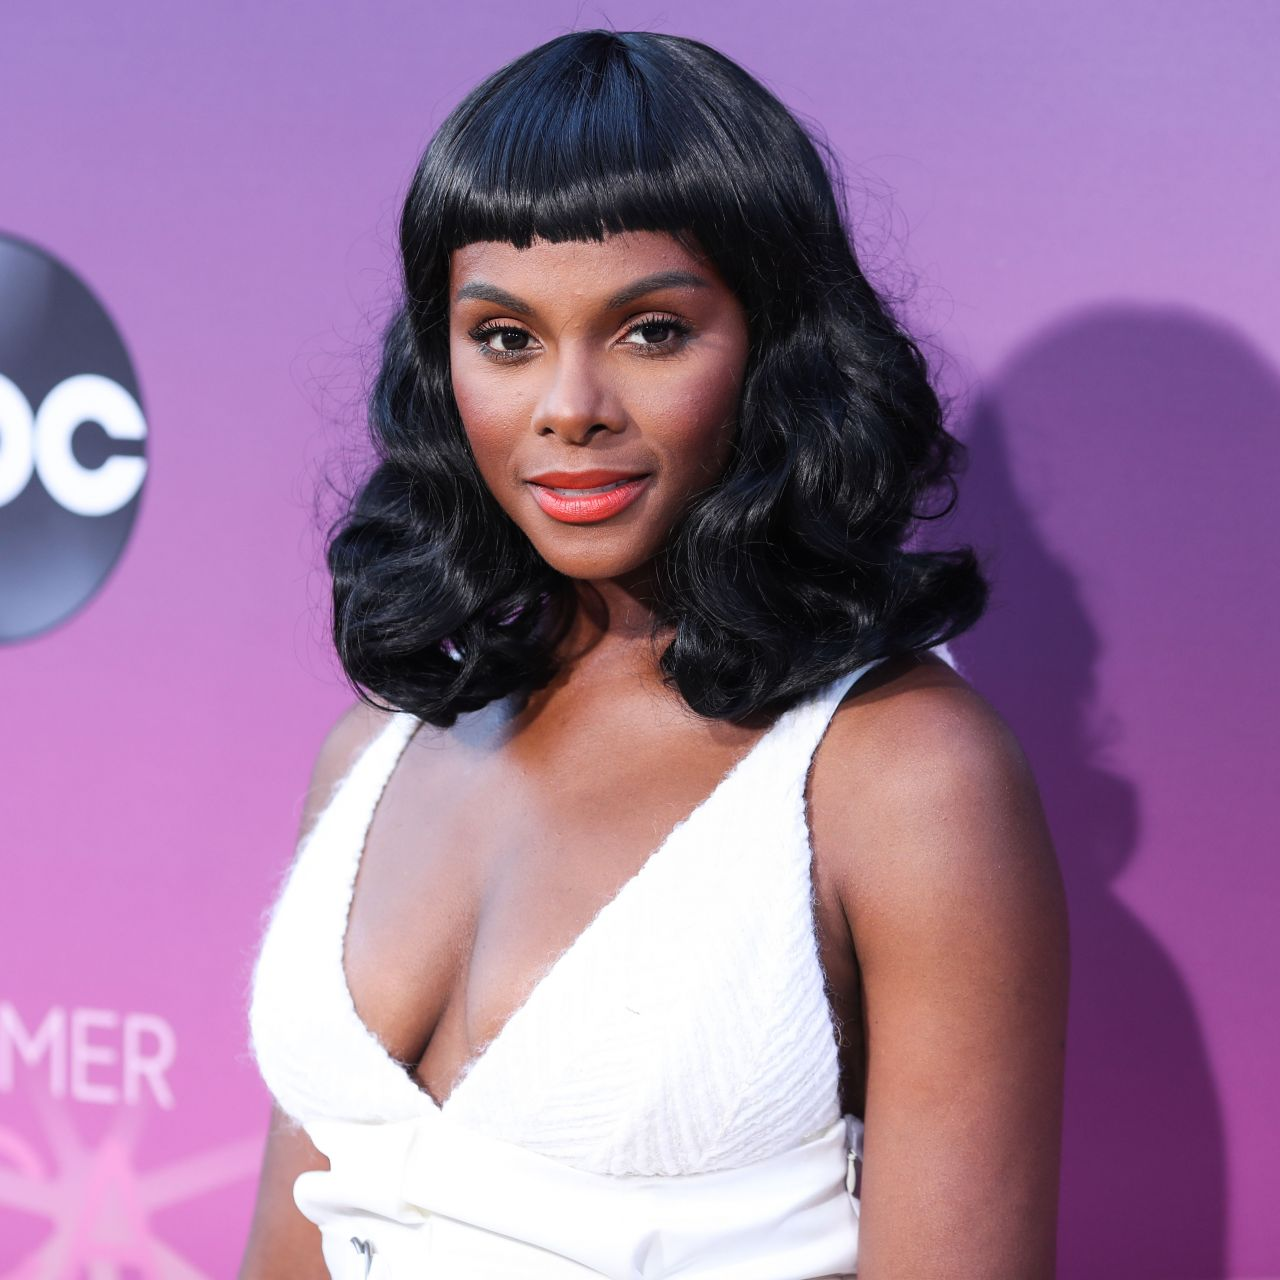 Tika Sumpter Biography - Facts, Childhood, Family Life & Achievements of Actress